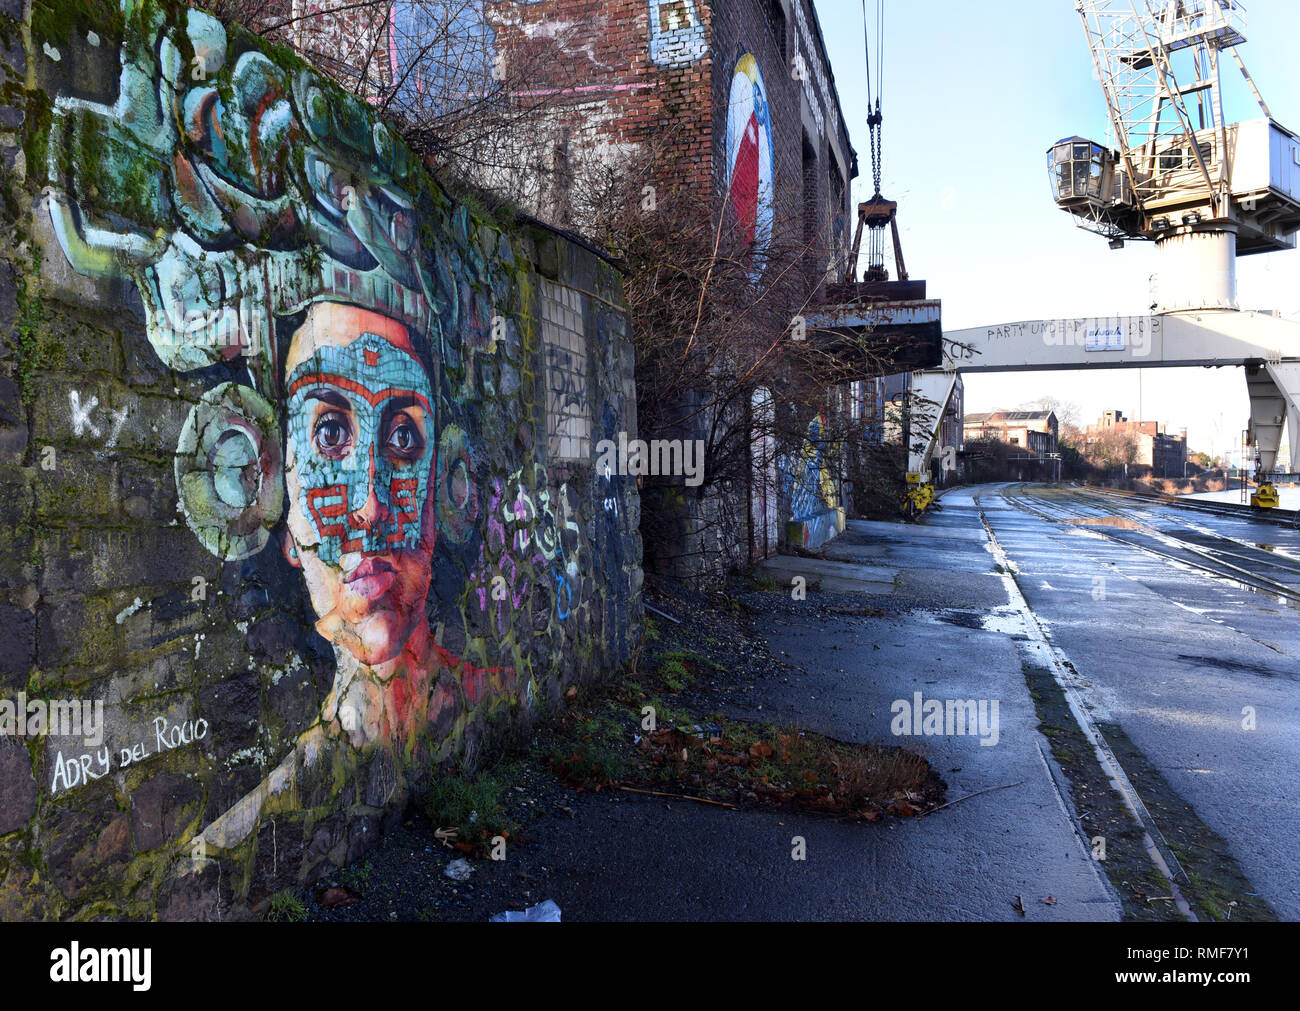 Krefeld, Germany. 11th Feb, 2019. 'Street Art Art' on a wall on the banks of the Rhine in the district of Uerdingen, which was created by the street art artist 'Adry del Ricio' as part of the event 'Rhine Side Gallery 2018' of the city of Krefeld. Credit: Horst Ossinger/dpa/Alamy Live News - Stock Image